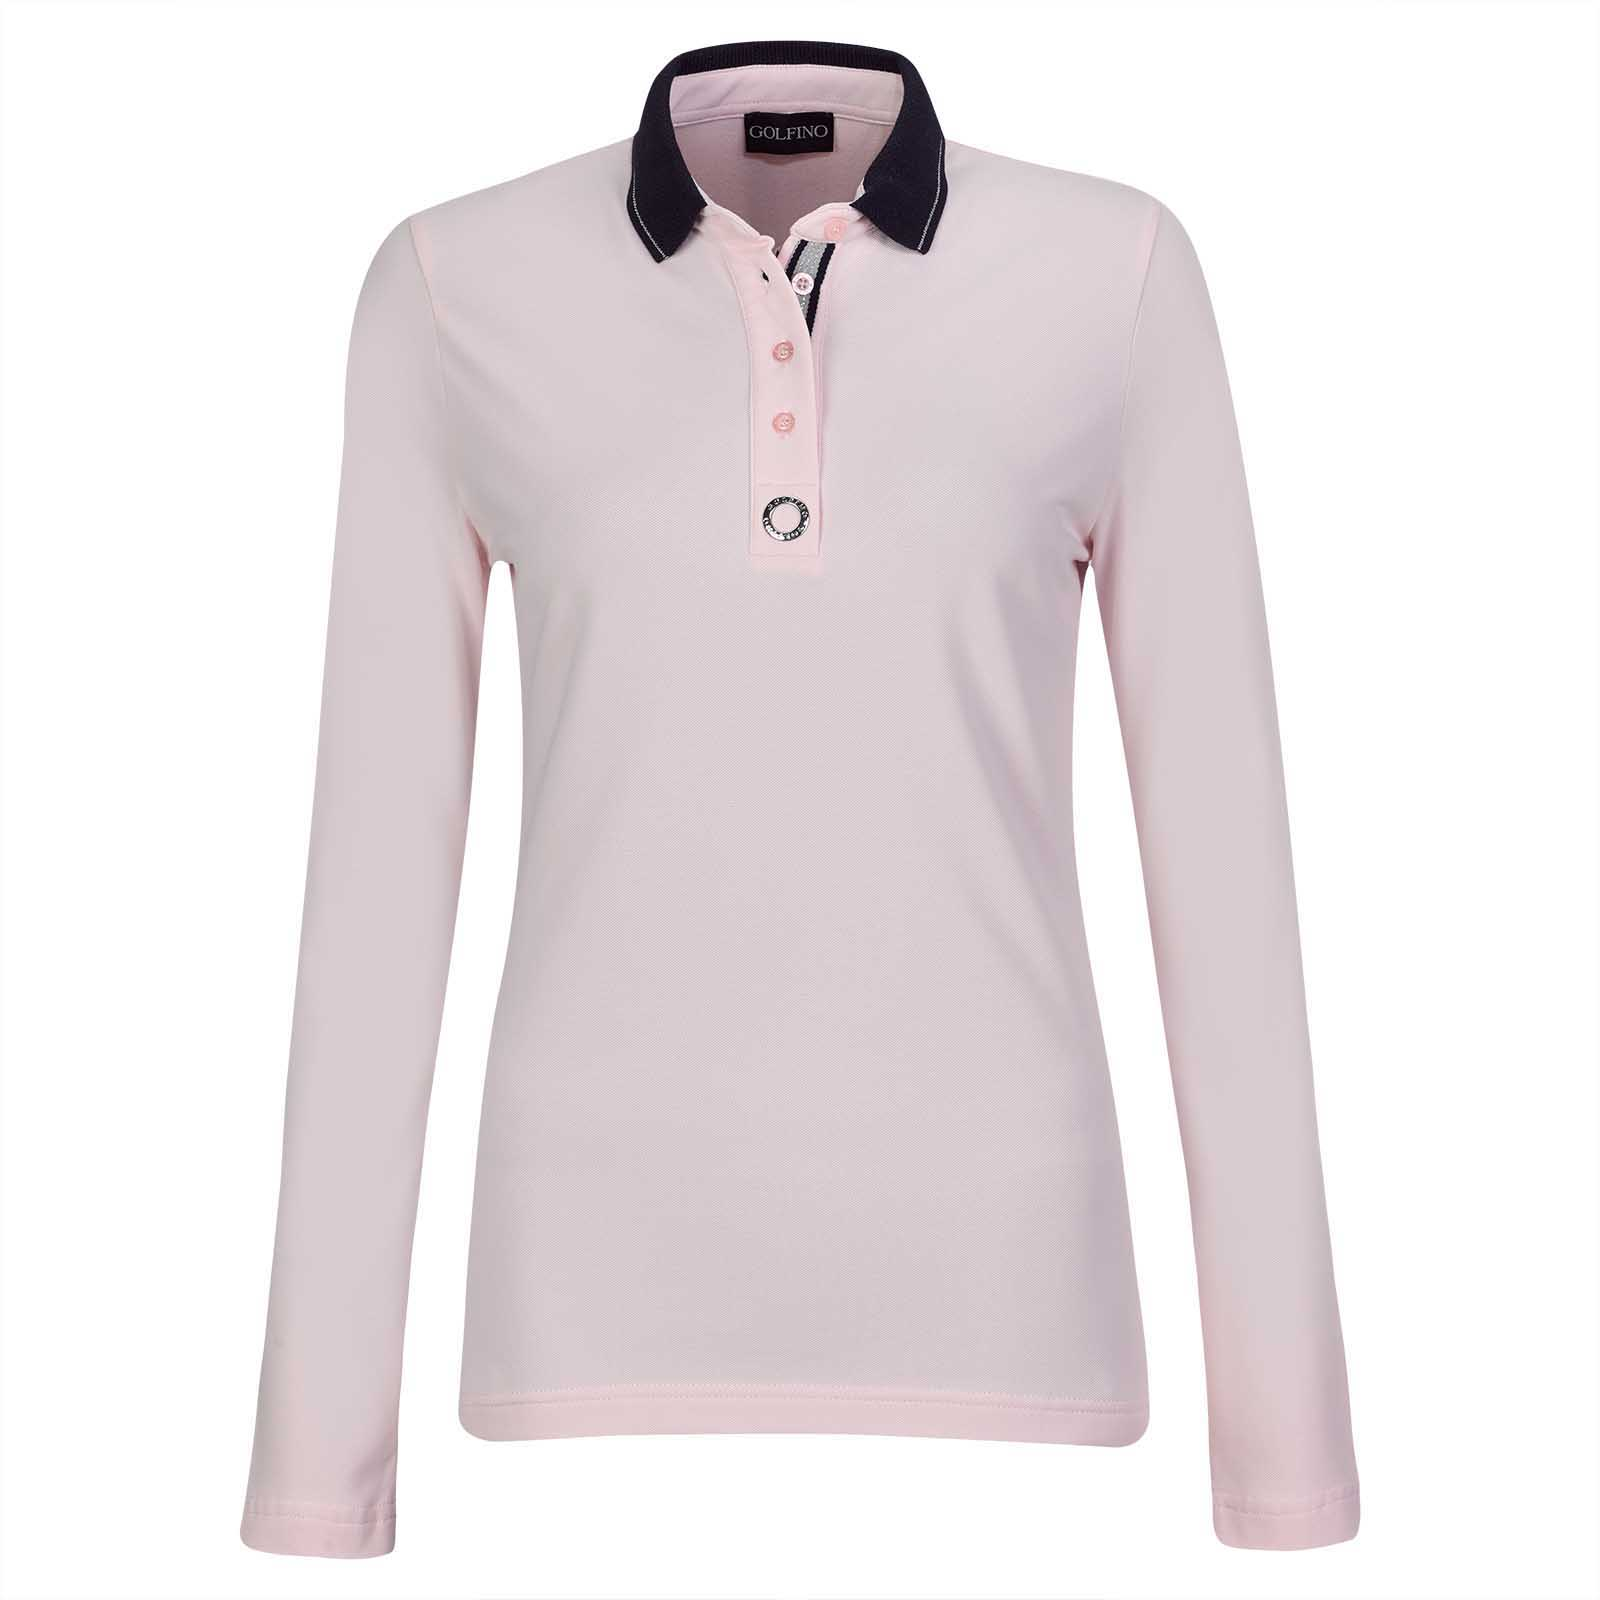 Silver Touch Damen Langarm Golfpolo mit Sun Protection Funktion